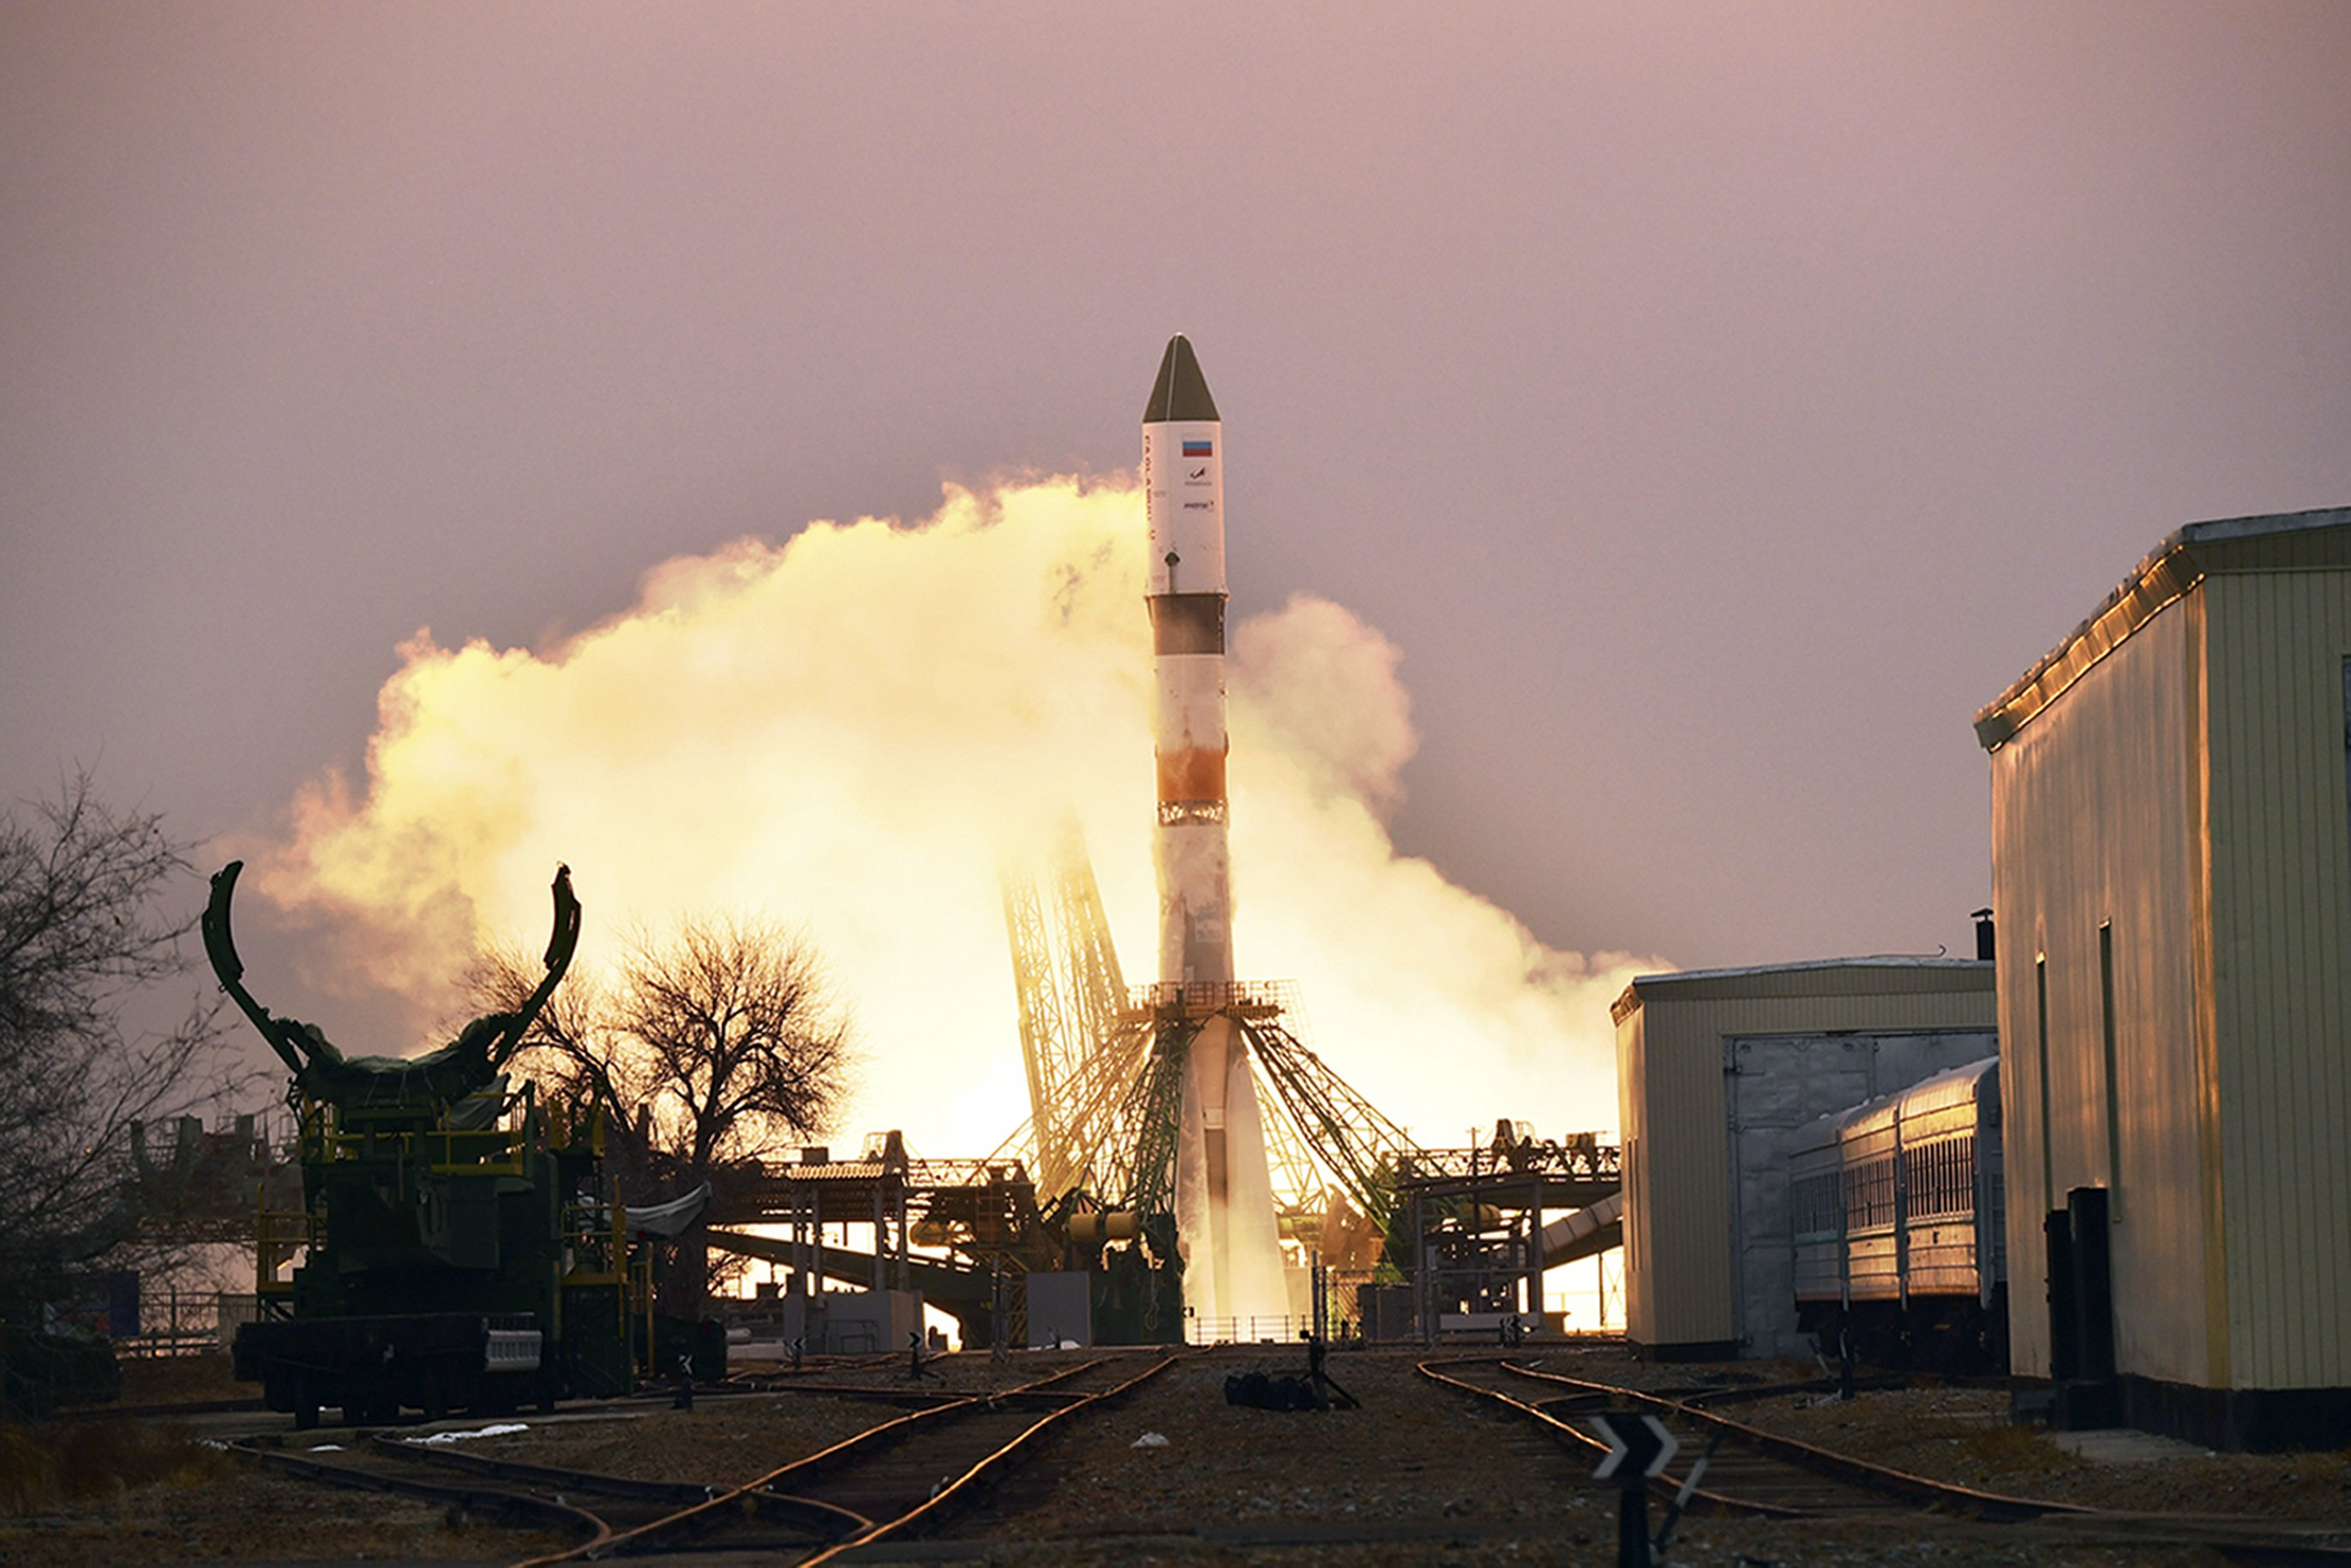 Russian cargo ship launched to International Space Station - Associated Press